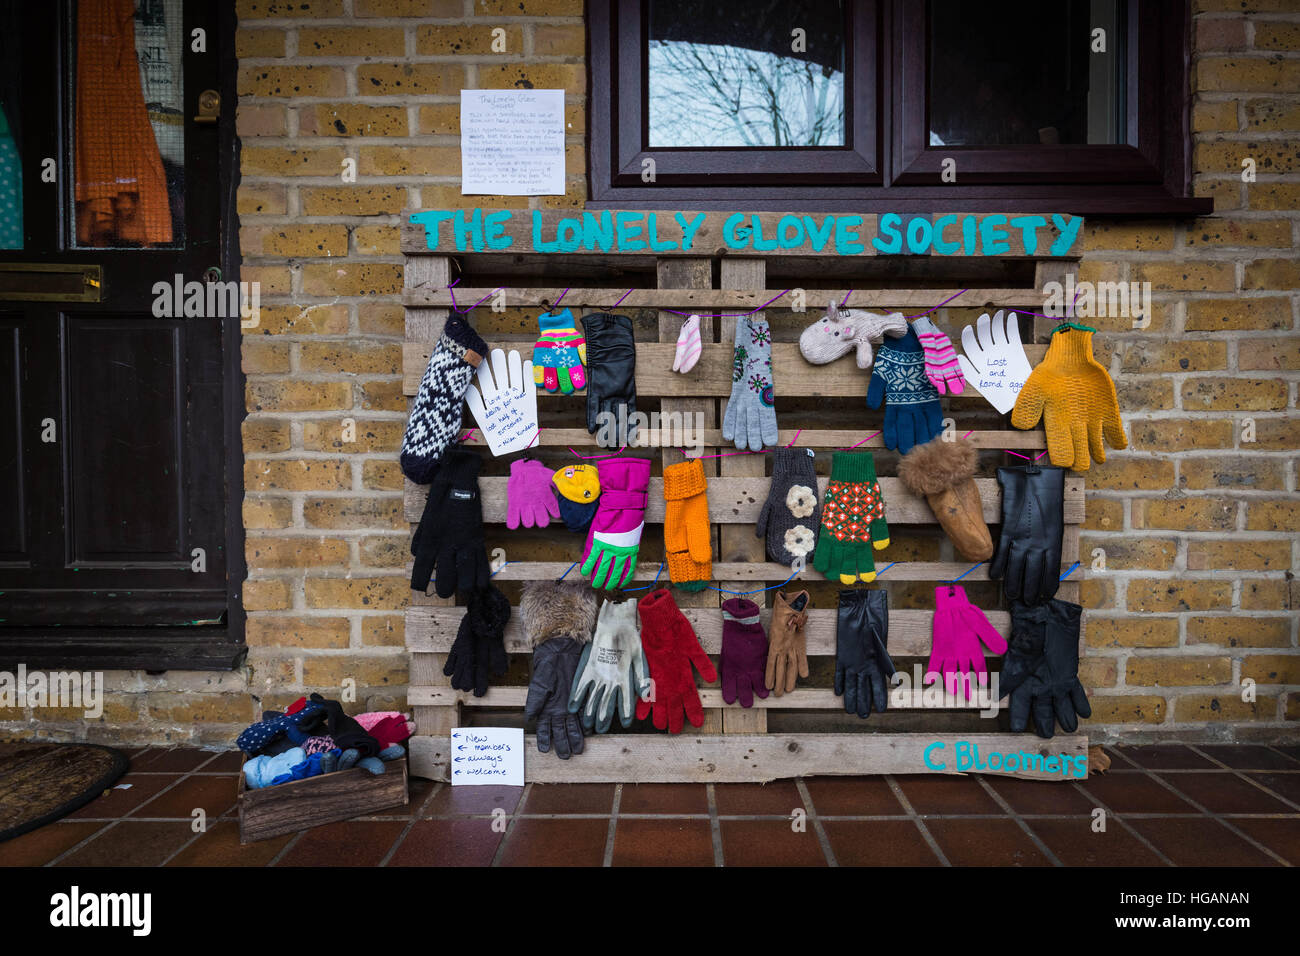 London, UK. 7th January, 2017. The Lonely Glove Society. A sanctuary for lost or disowned gloves that have been - Stock Image